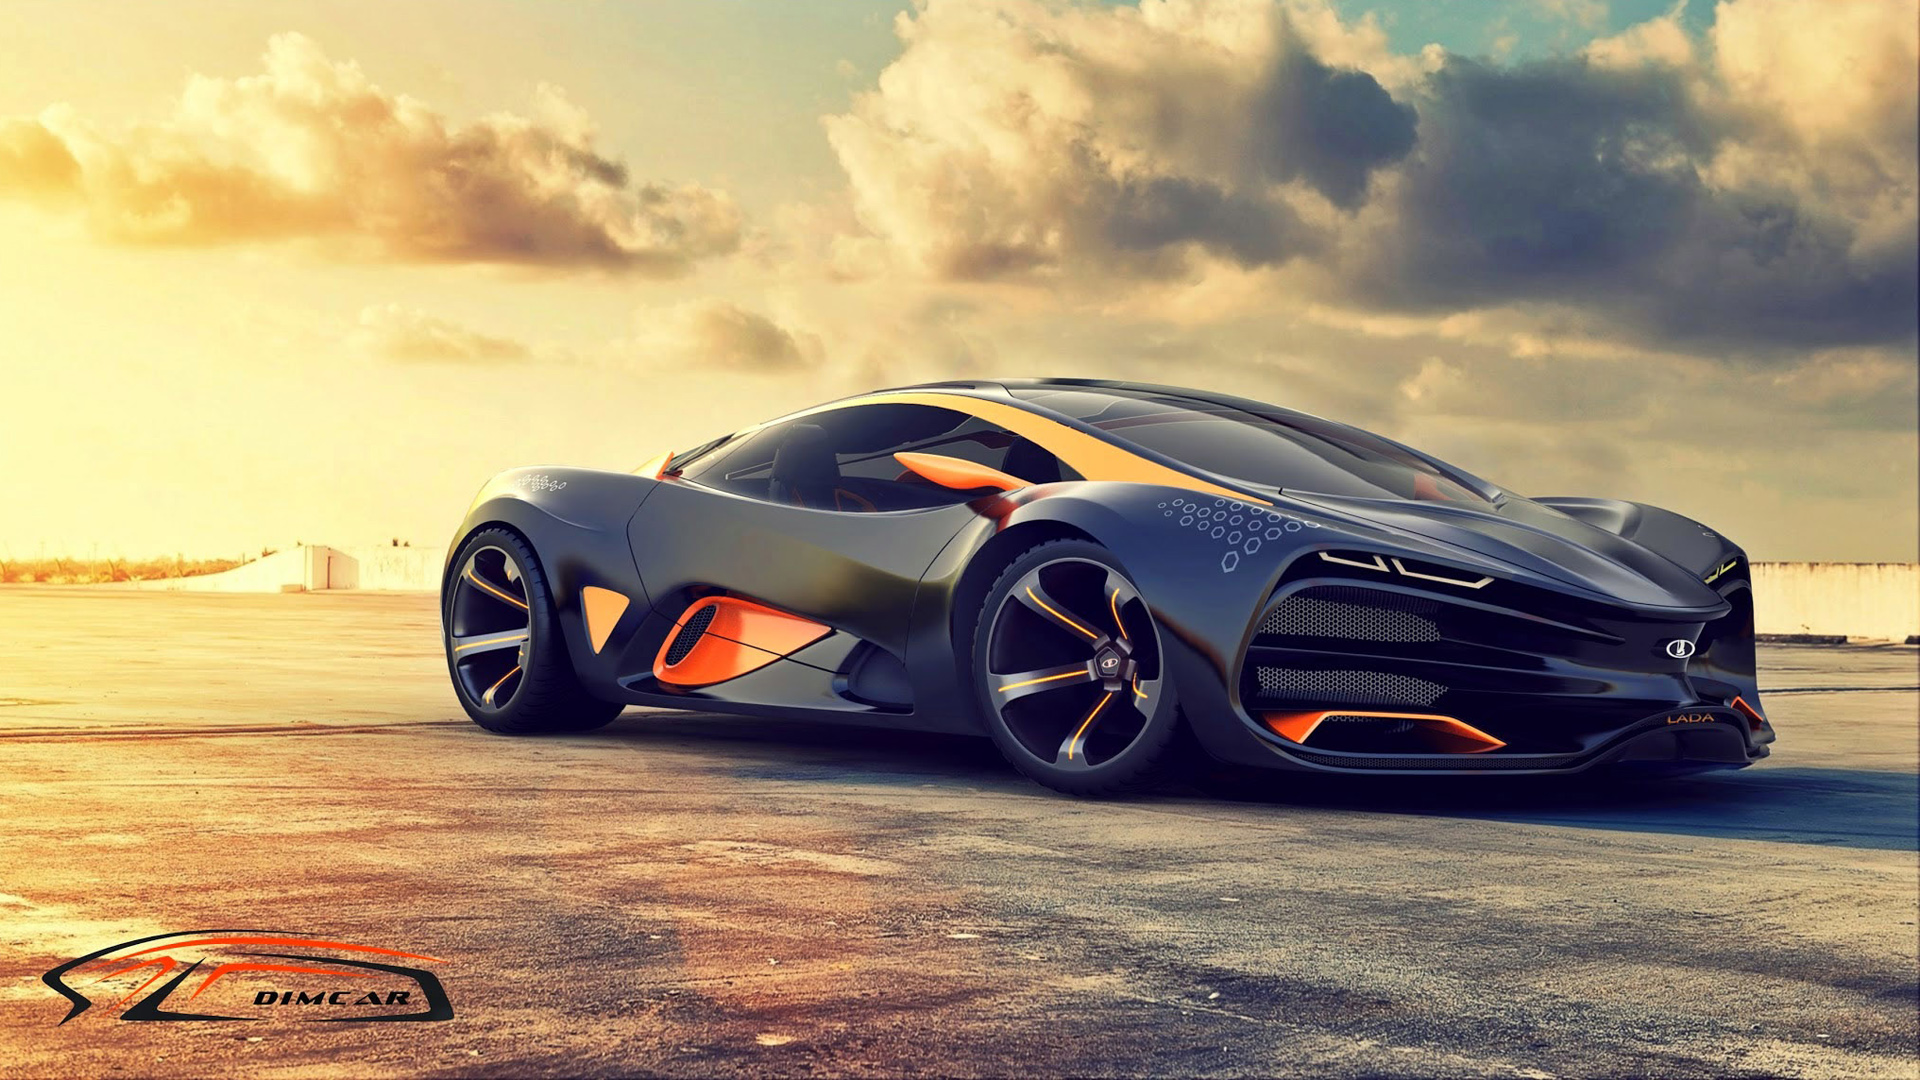 Gallery For gt Supercar Concept Wallpaper 1920x1080